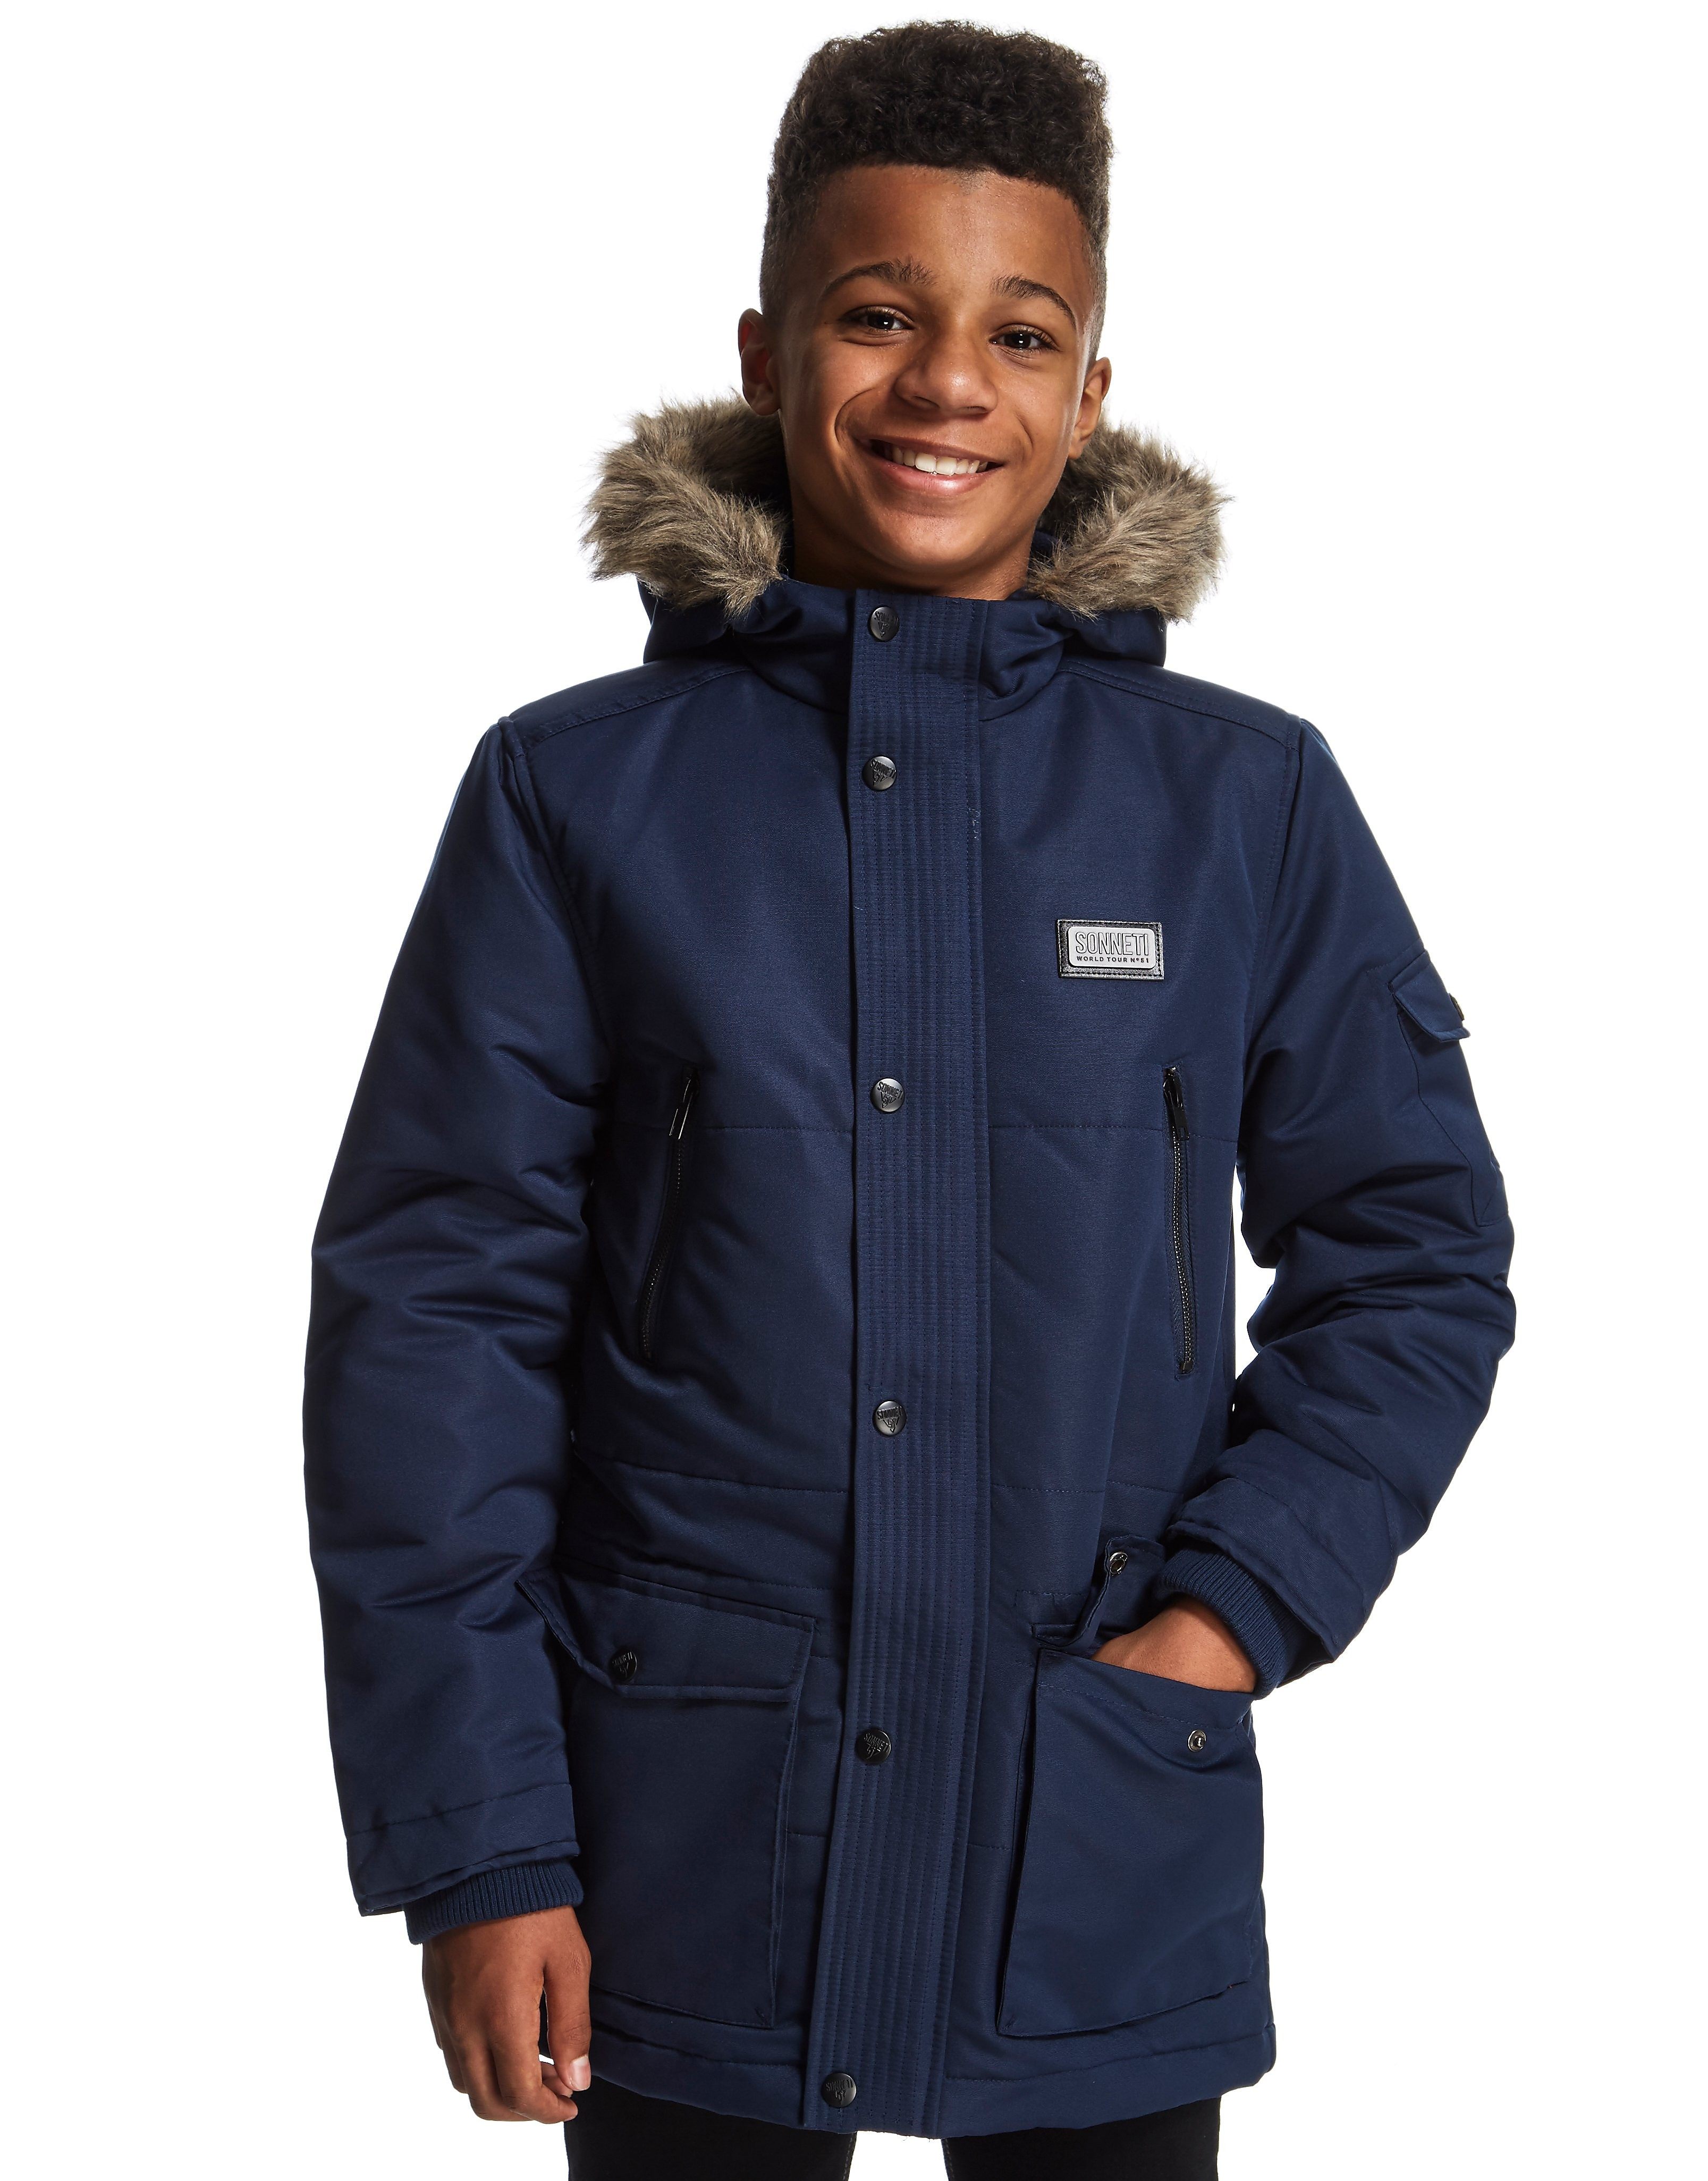 Sonneti Vade Jacket Junior